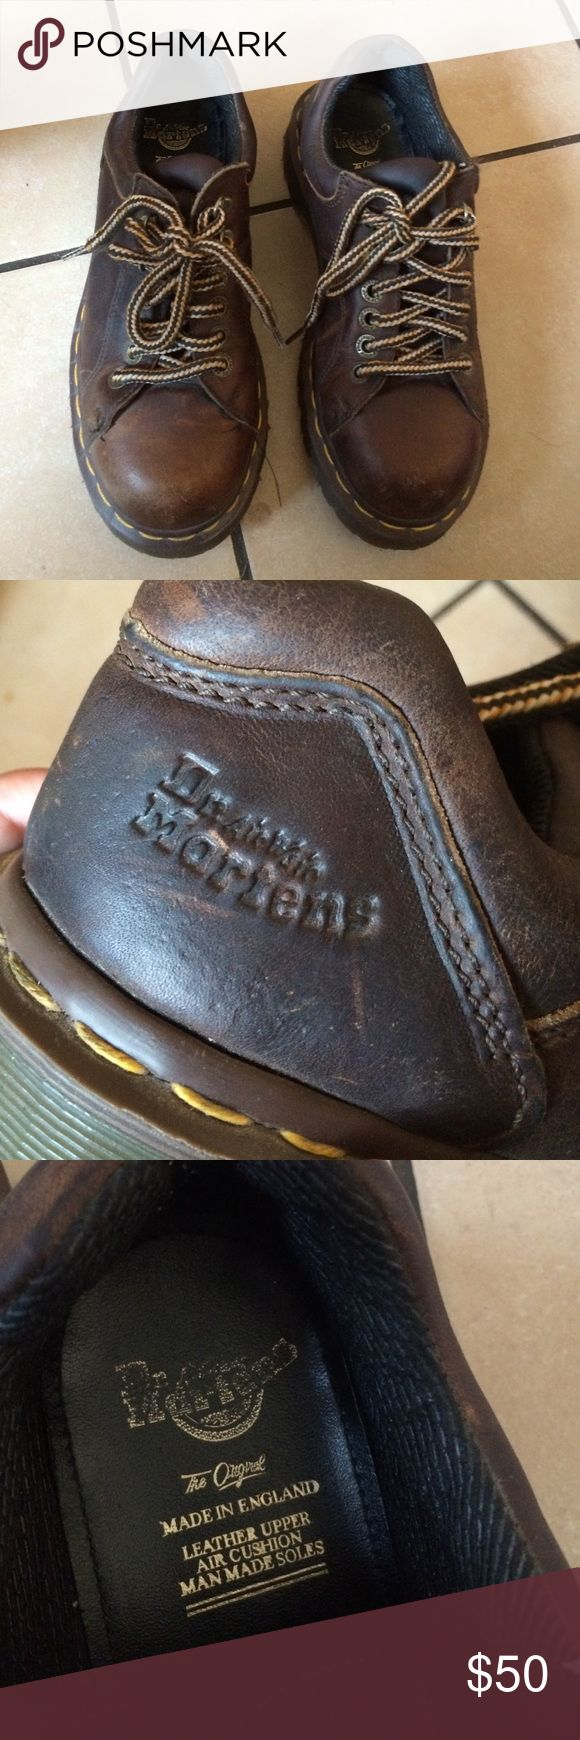 DR MARTENS Size 5 UK = 7 US. Used A Lot Price reflects / heavy duty Dr. Martens Shoes